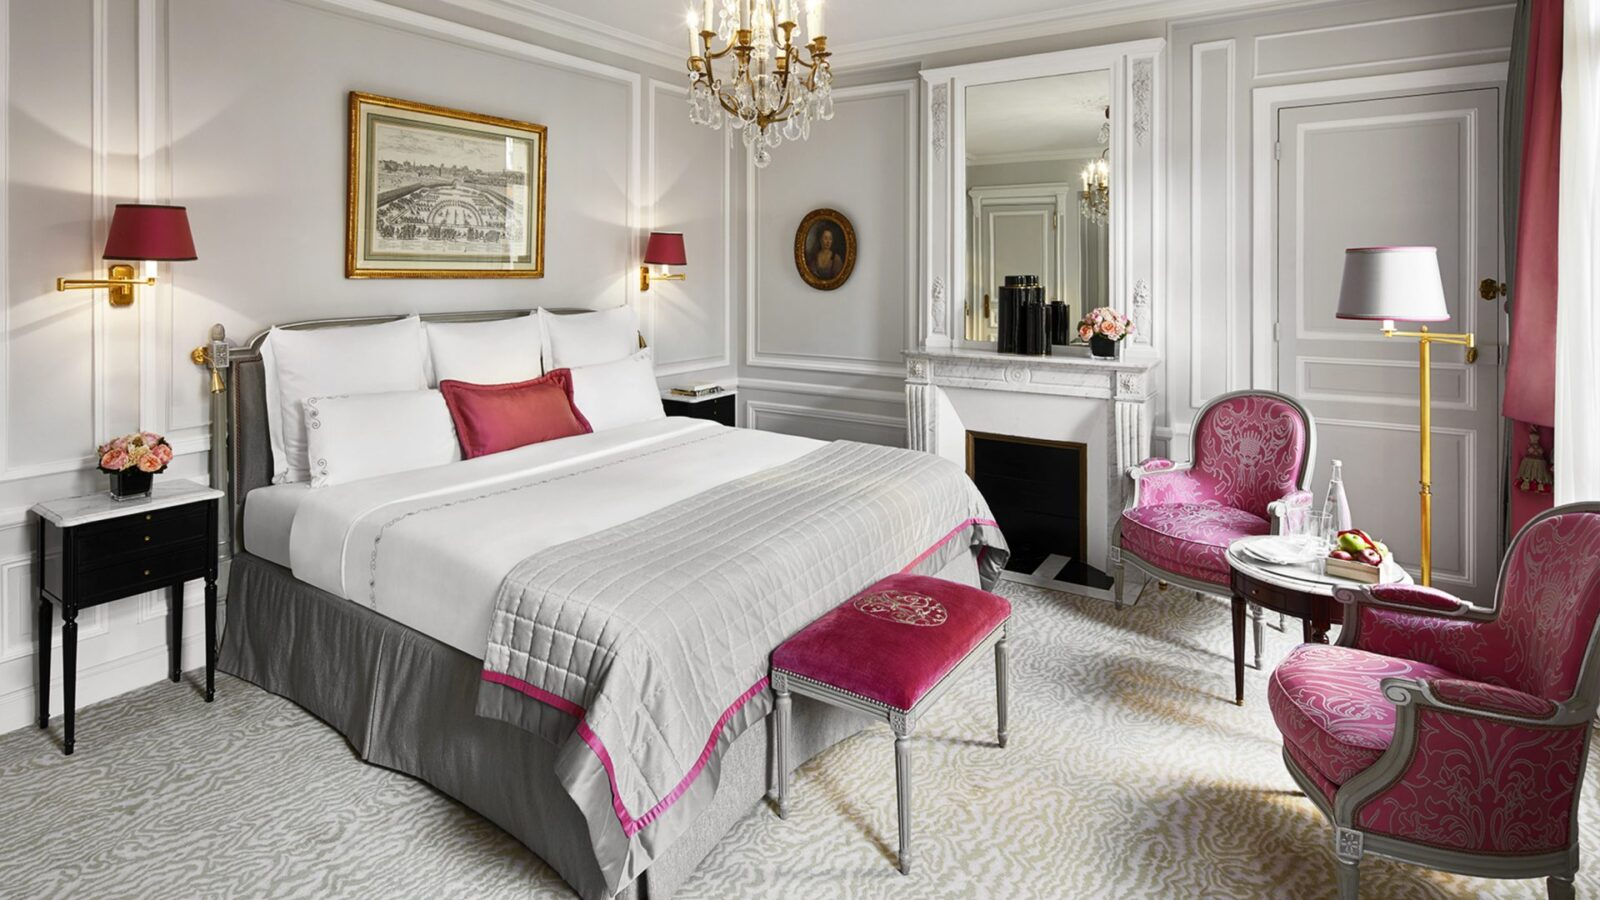 Deluxe room at Hôtel Plaza Athénée, Paris